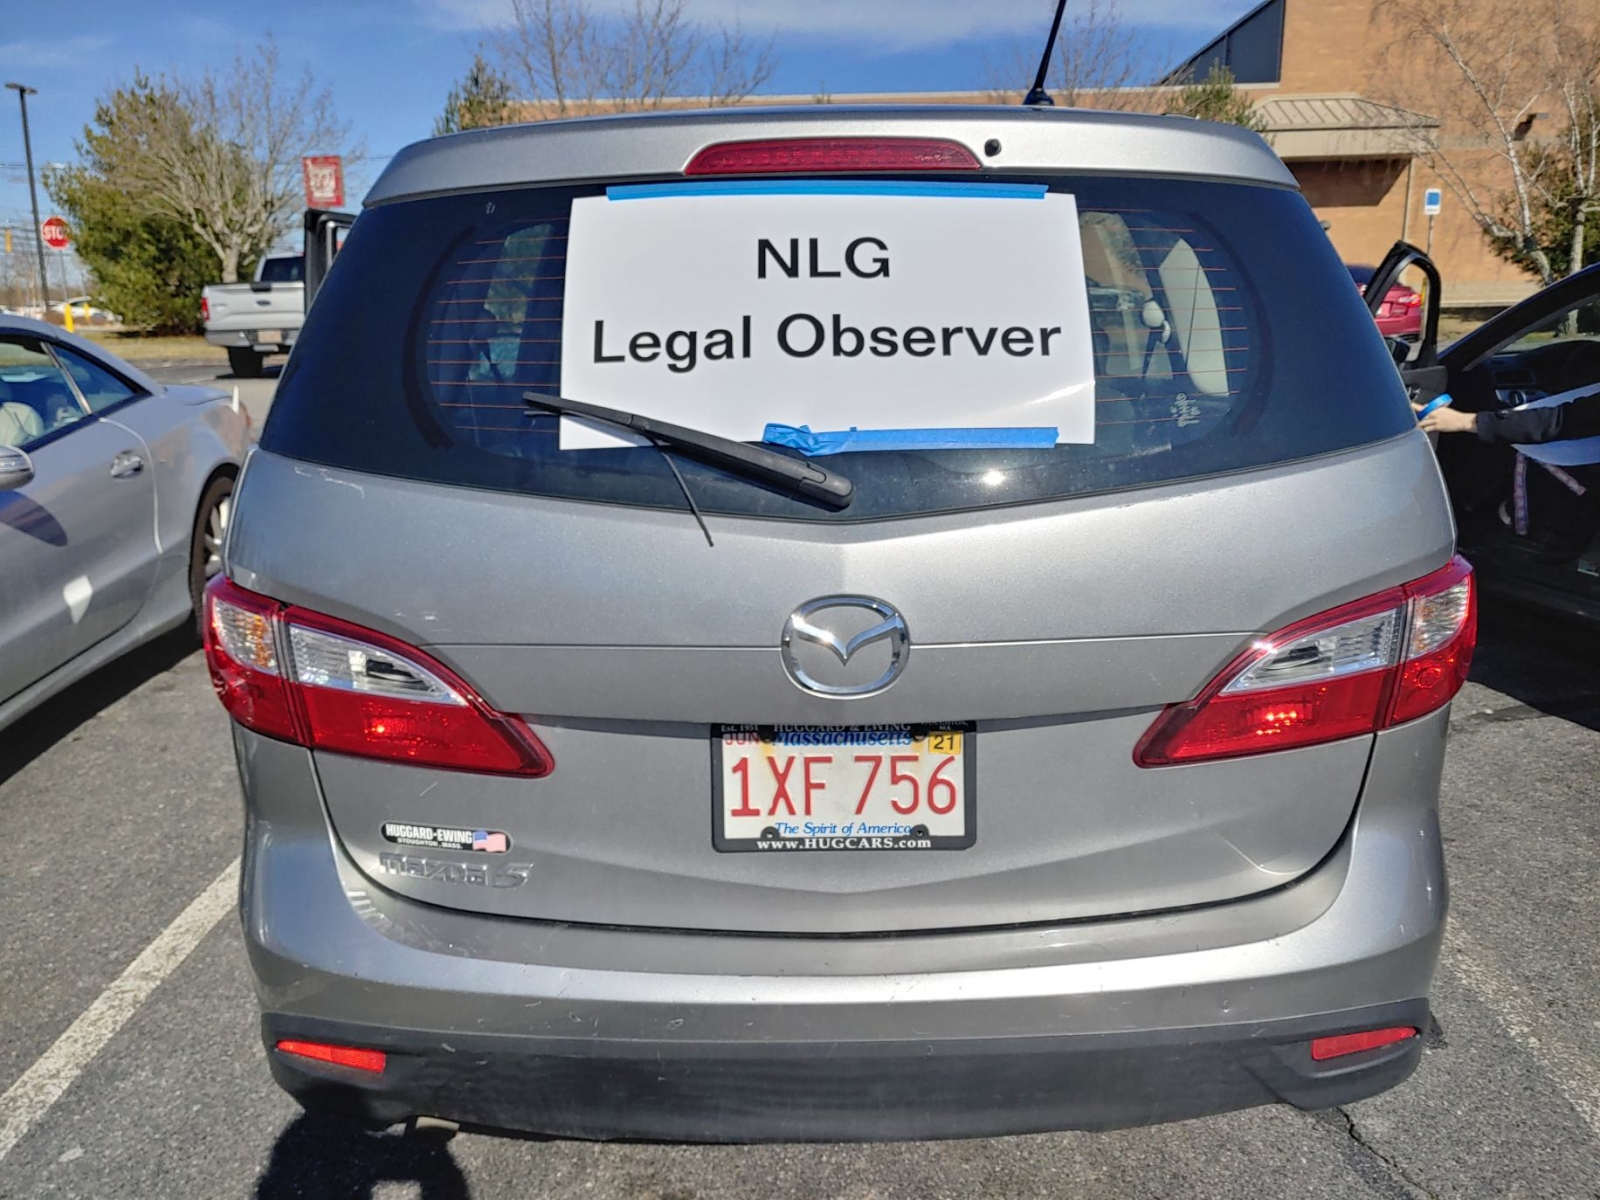 Legal Observing On The Road